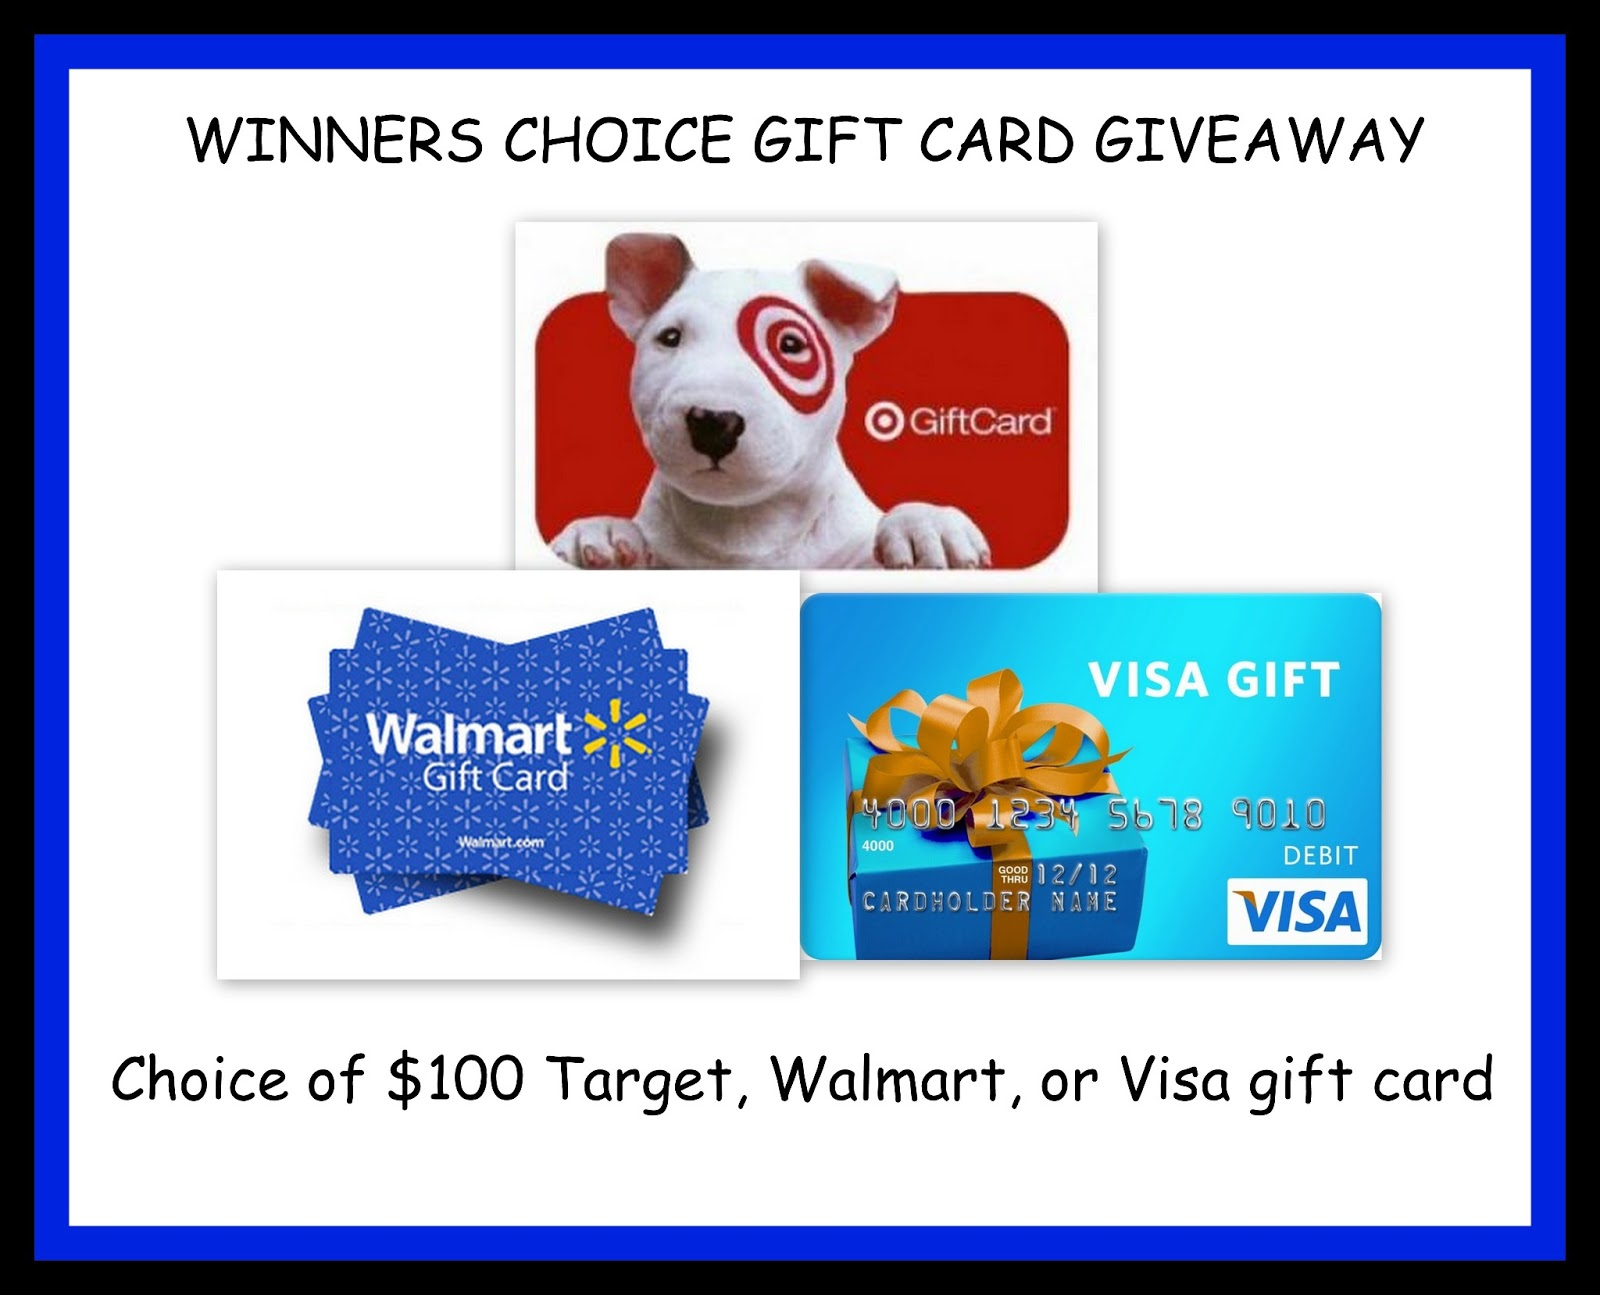 video card giveaway winners choice gift card giveaway 9933